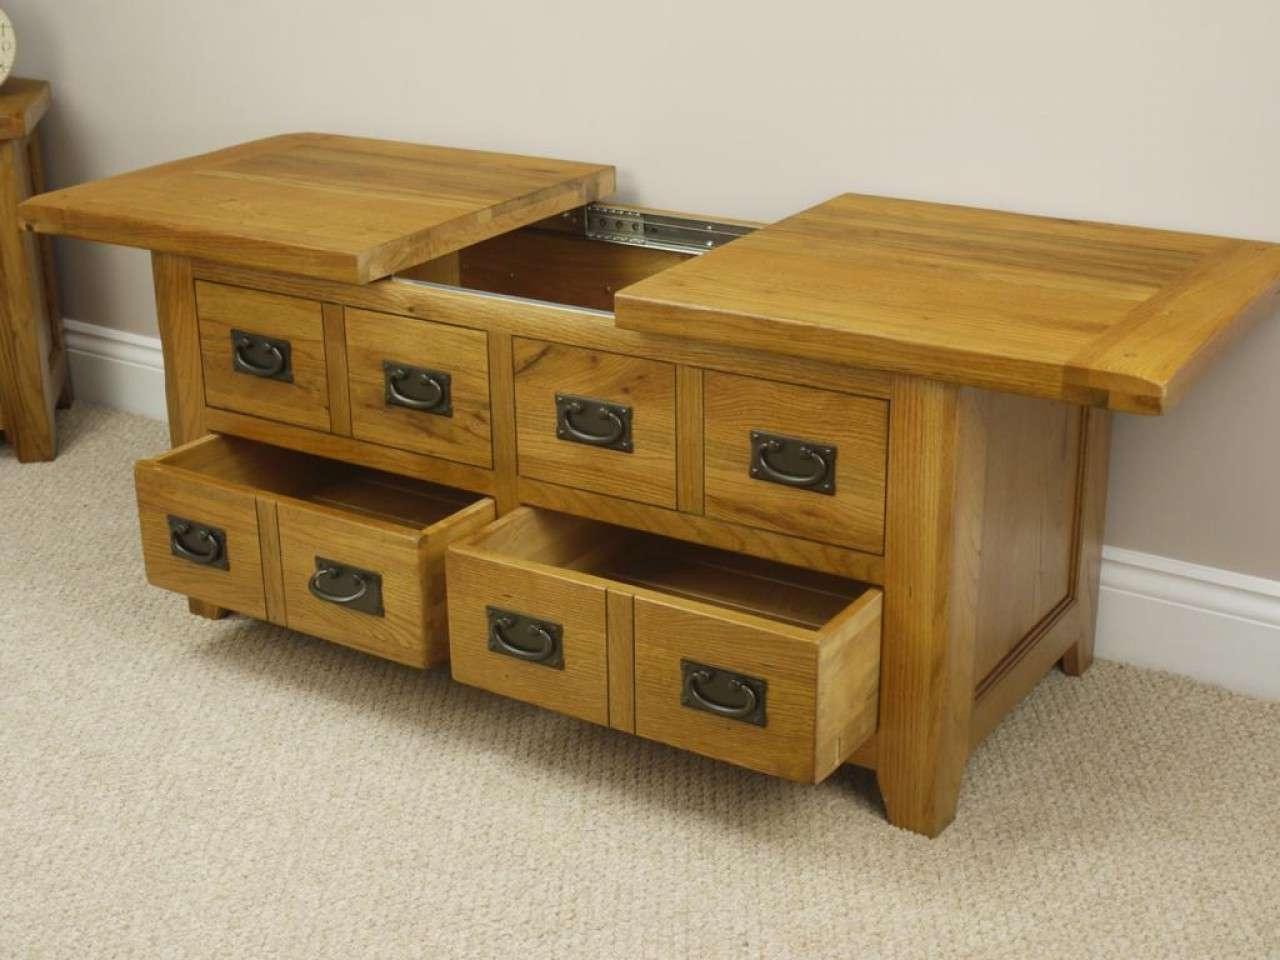 Widely Used Large Coffee Tables With Storage For Coffee Tables : Large Oak Coffee Table With Storage Tables Square (View 20 of 20)